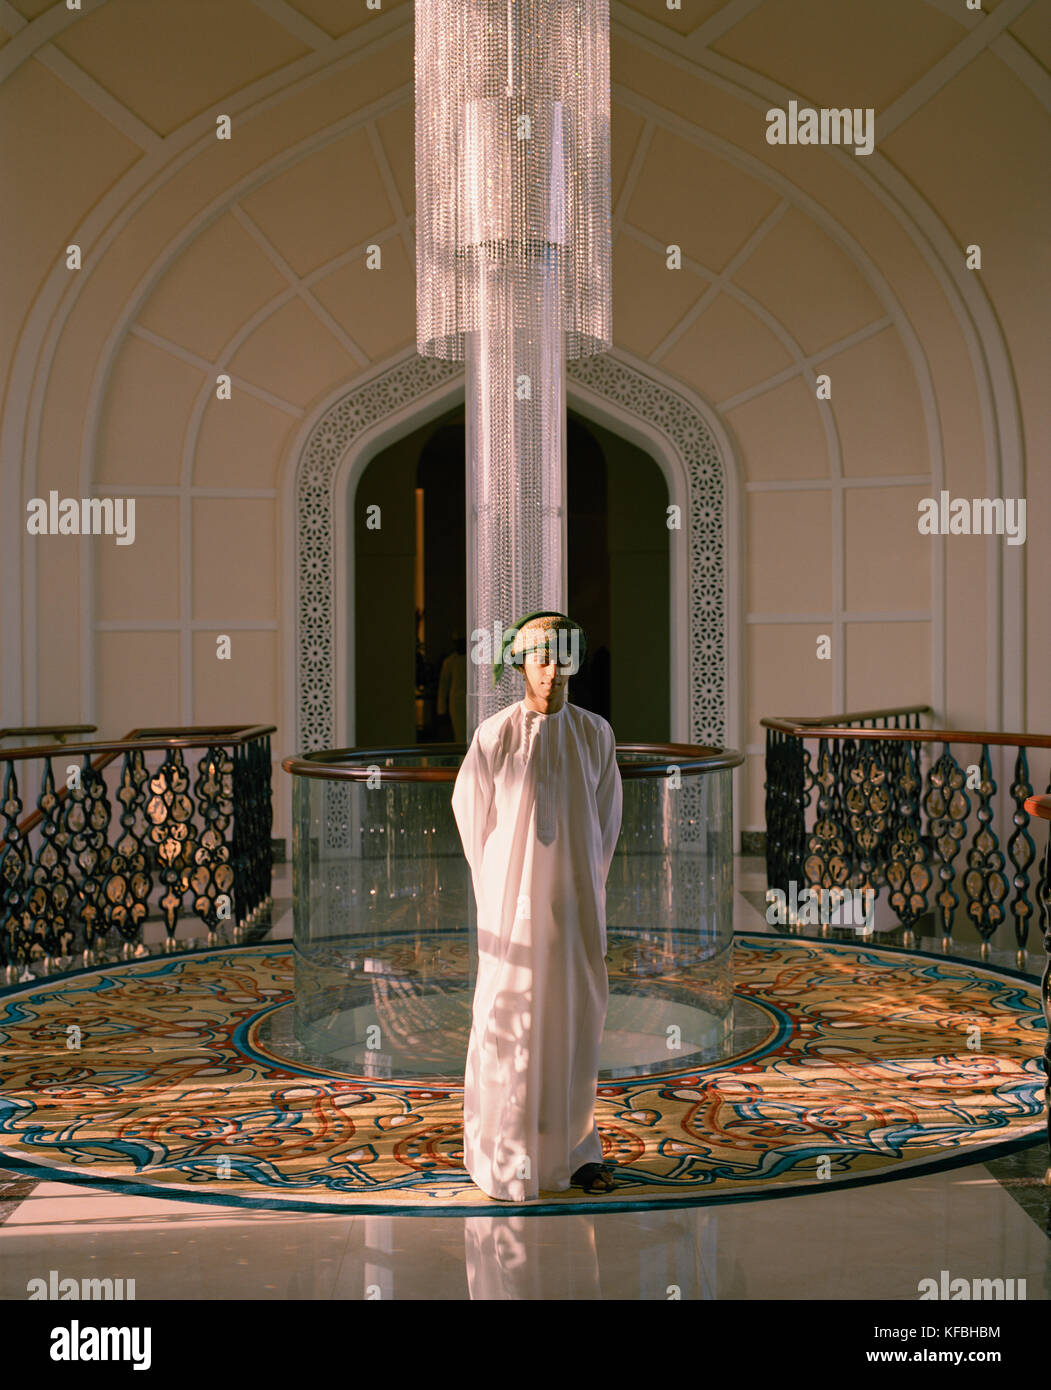 OMAN, Muscat, Barr Al Jissah Resort and Spa, Bellboy standing in hotel, portrait - Stock Image